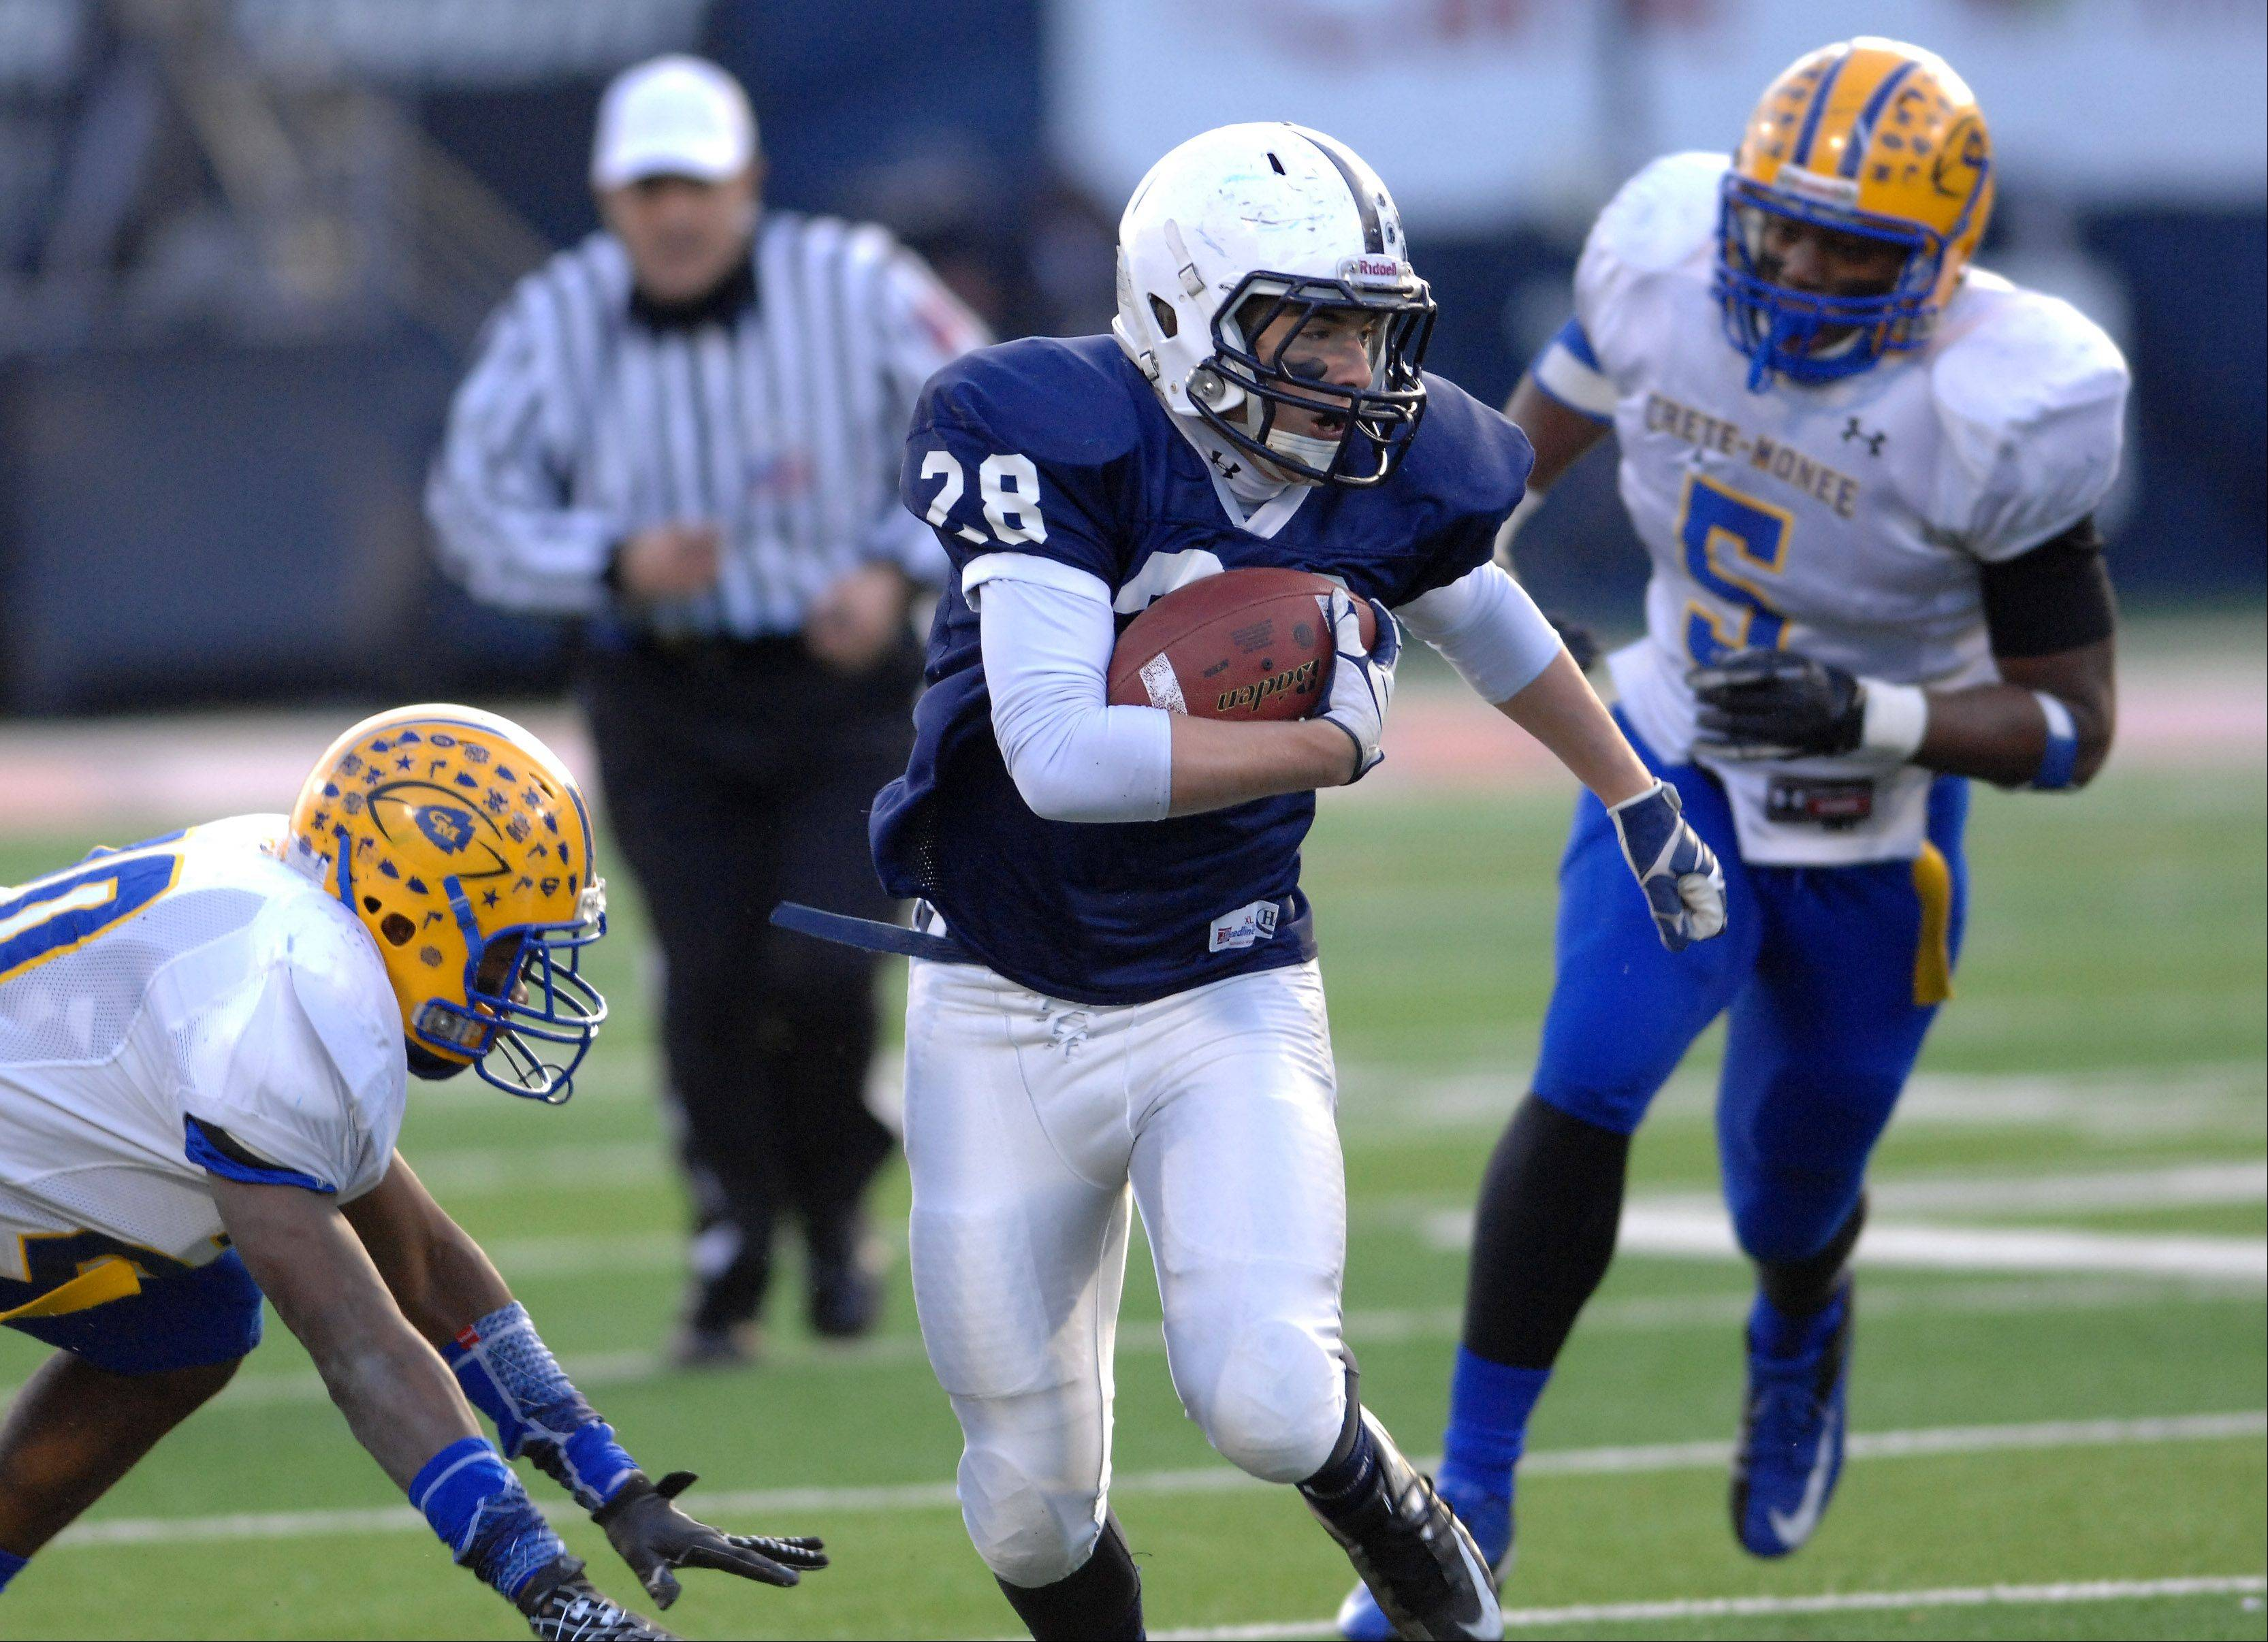 Images from the 6A state title game between Cary-Grove and Crete-Monee Saturday in Champaign.